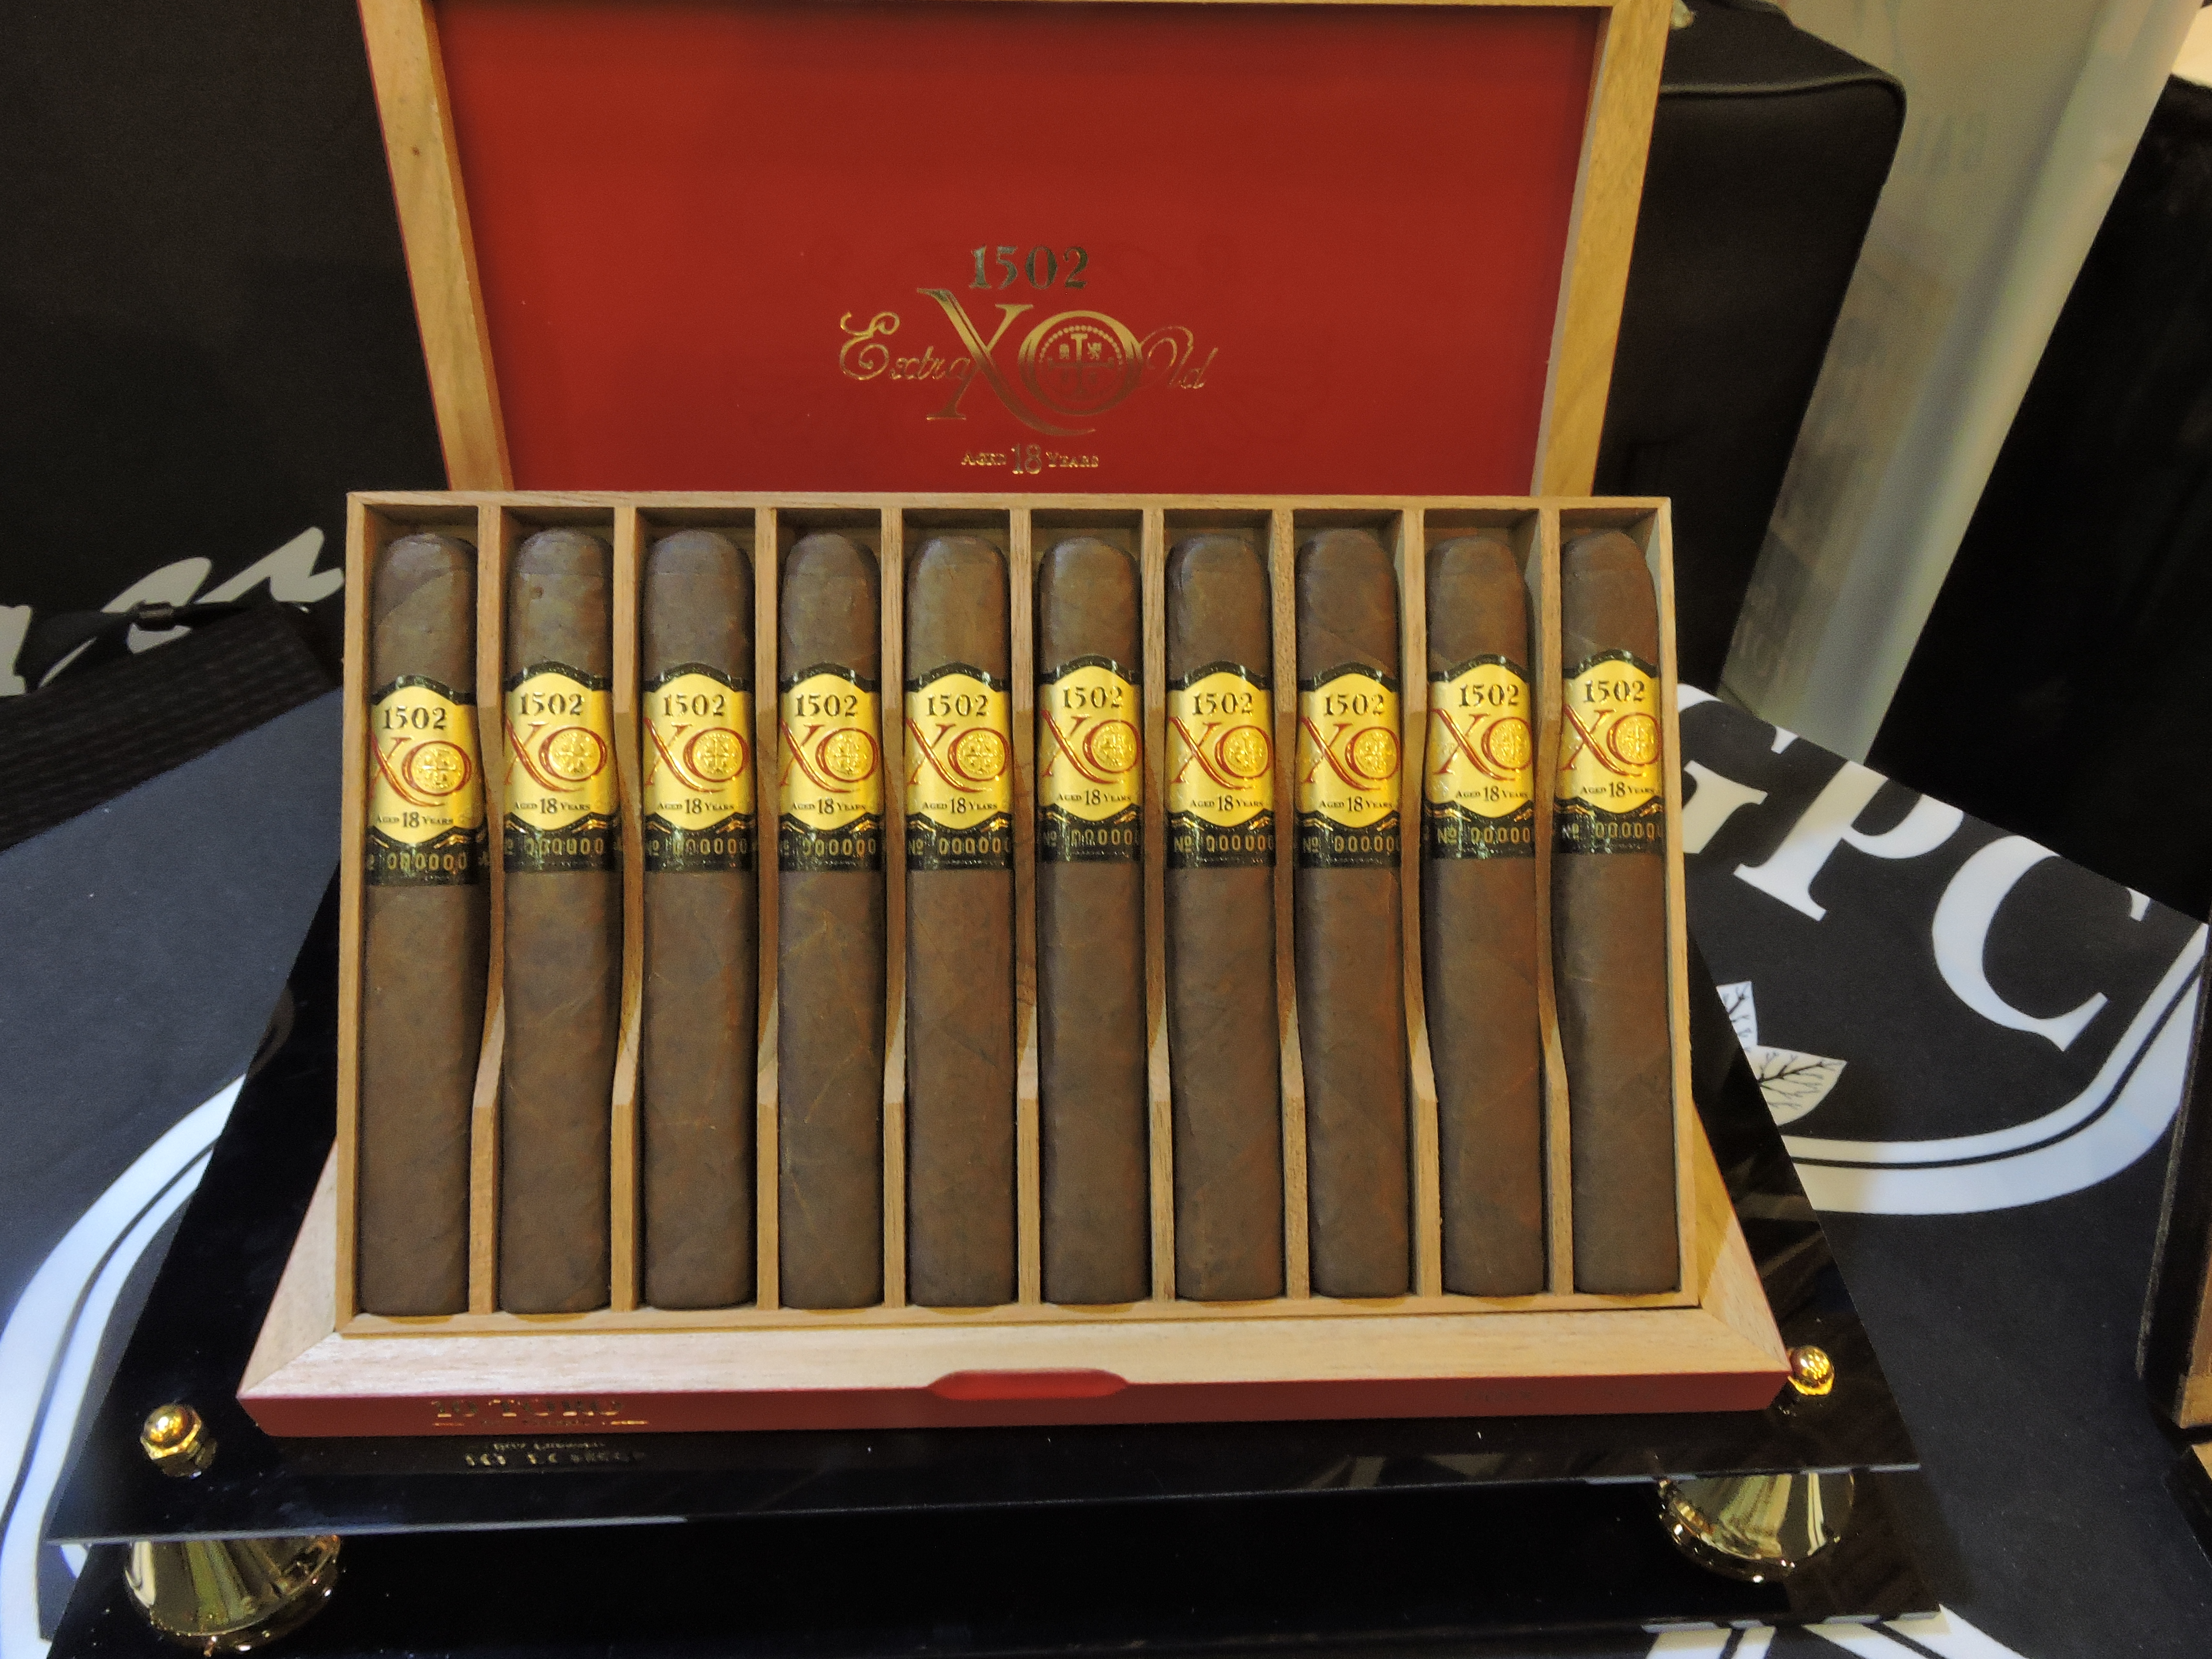 Cigar News: 1502 XO to Debut in March